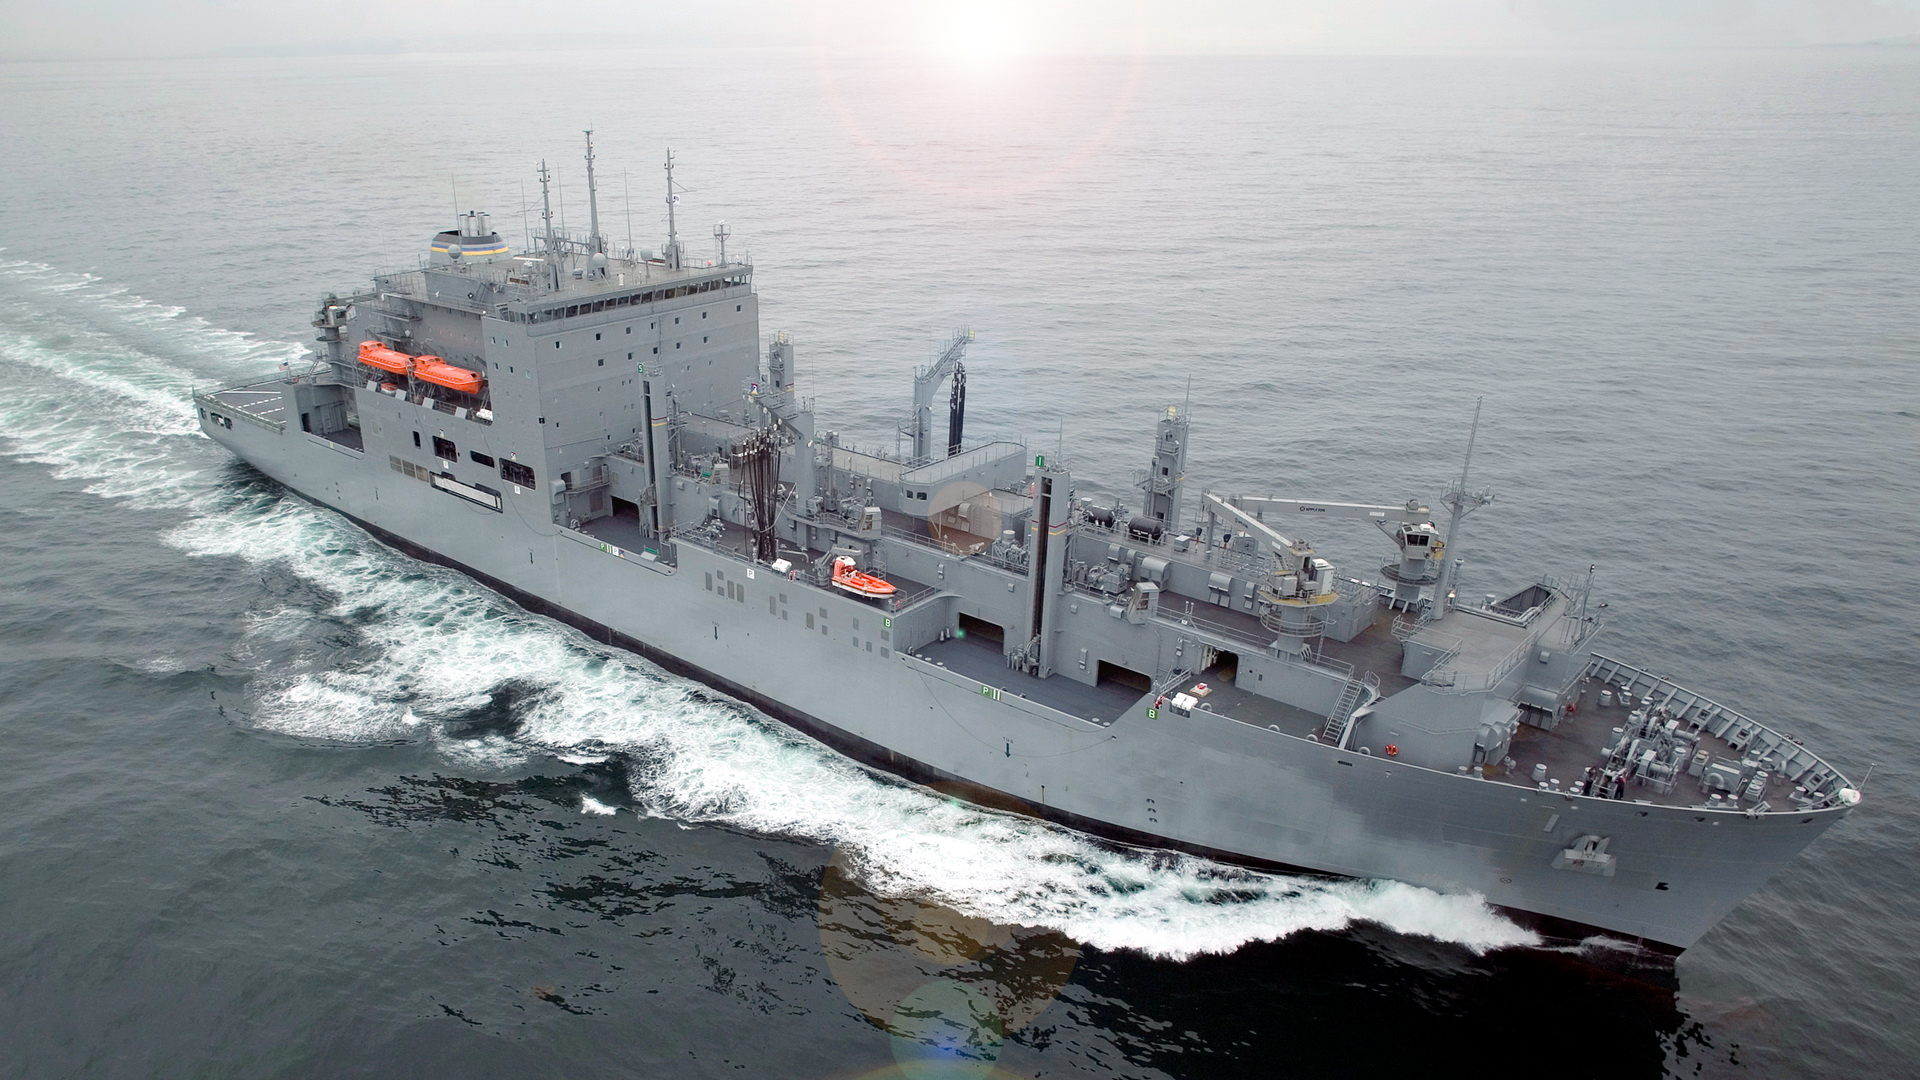 Hd wallpaper indian army - Indian Army Wallpapers Indian Army Ship Wallpaper